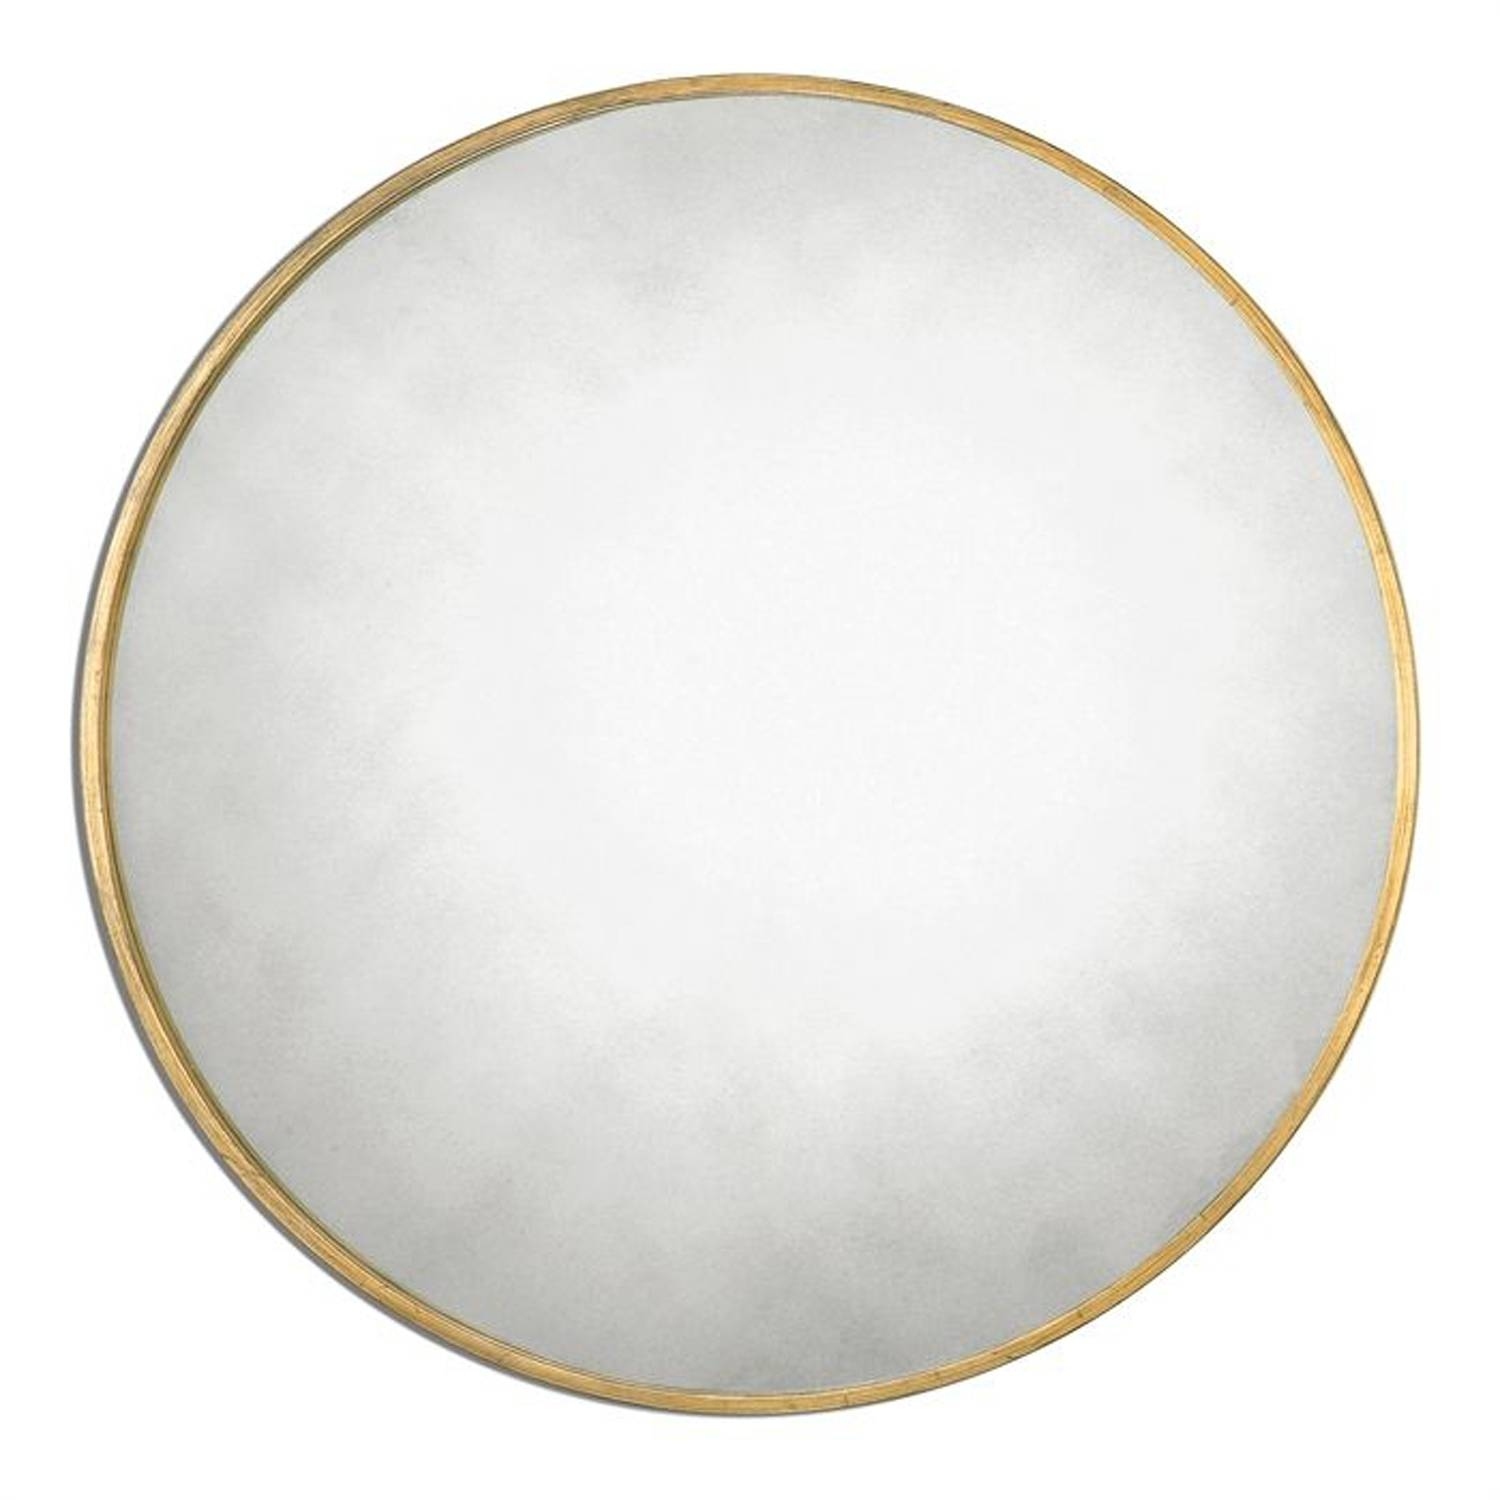 Wall Mirrors, Bathroom Mirrors | Bellacor for Circular Wall Mirrors (Image 24 of 25)